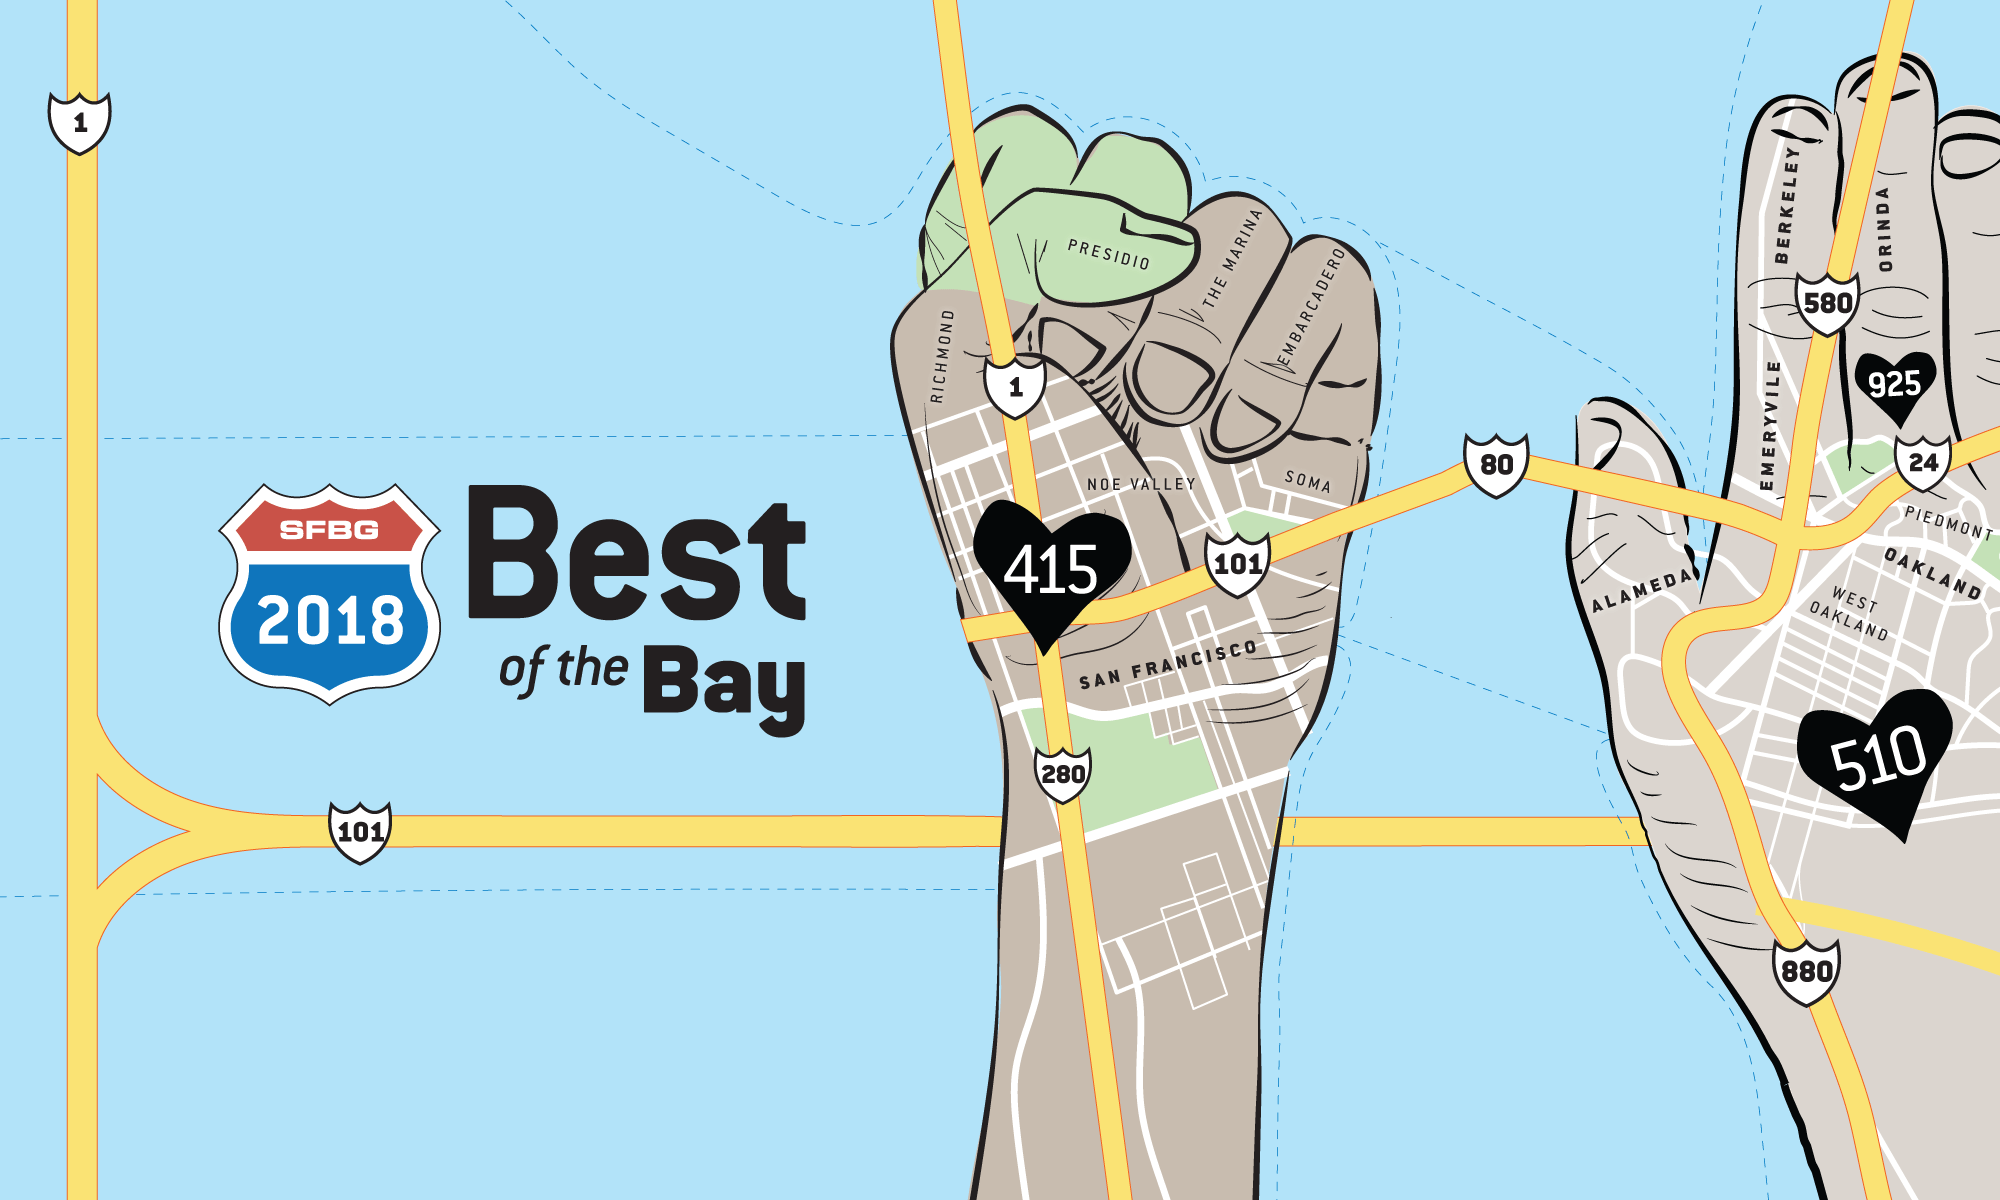 BOB-2018-SF-East_Bay-voting-page-1